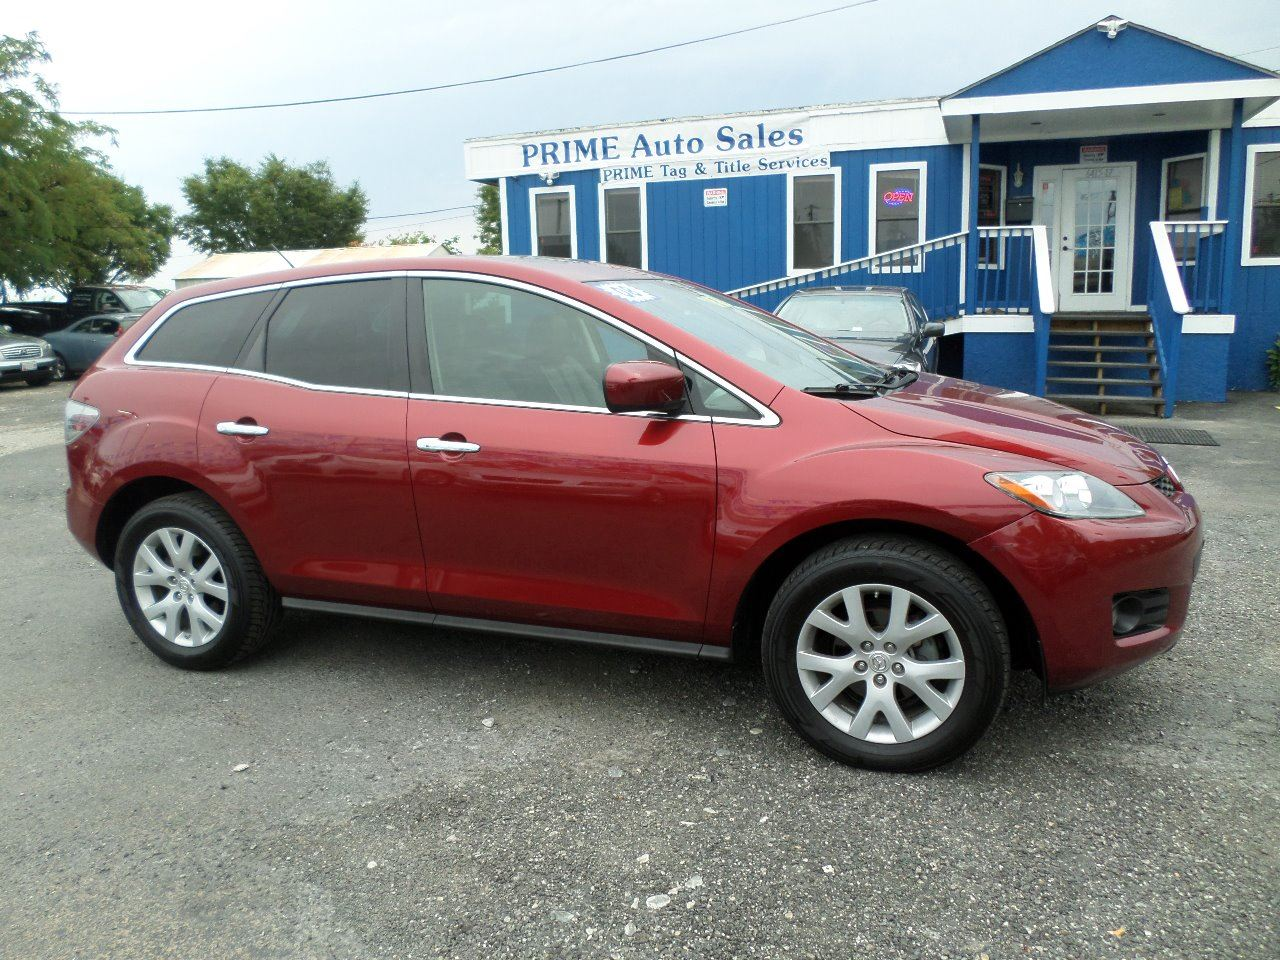 2008 mazda cx 7 grand touring in baltimore md prime auto sales. Black Bedroom Furniture Sets. Home Design Ideas